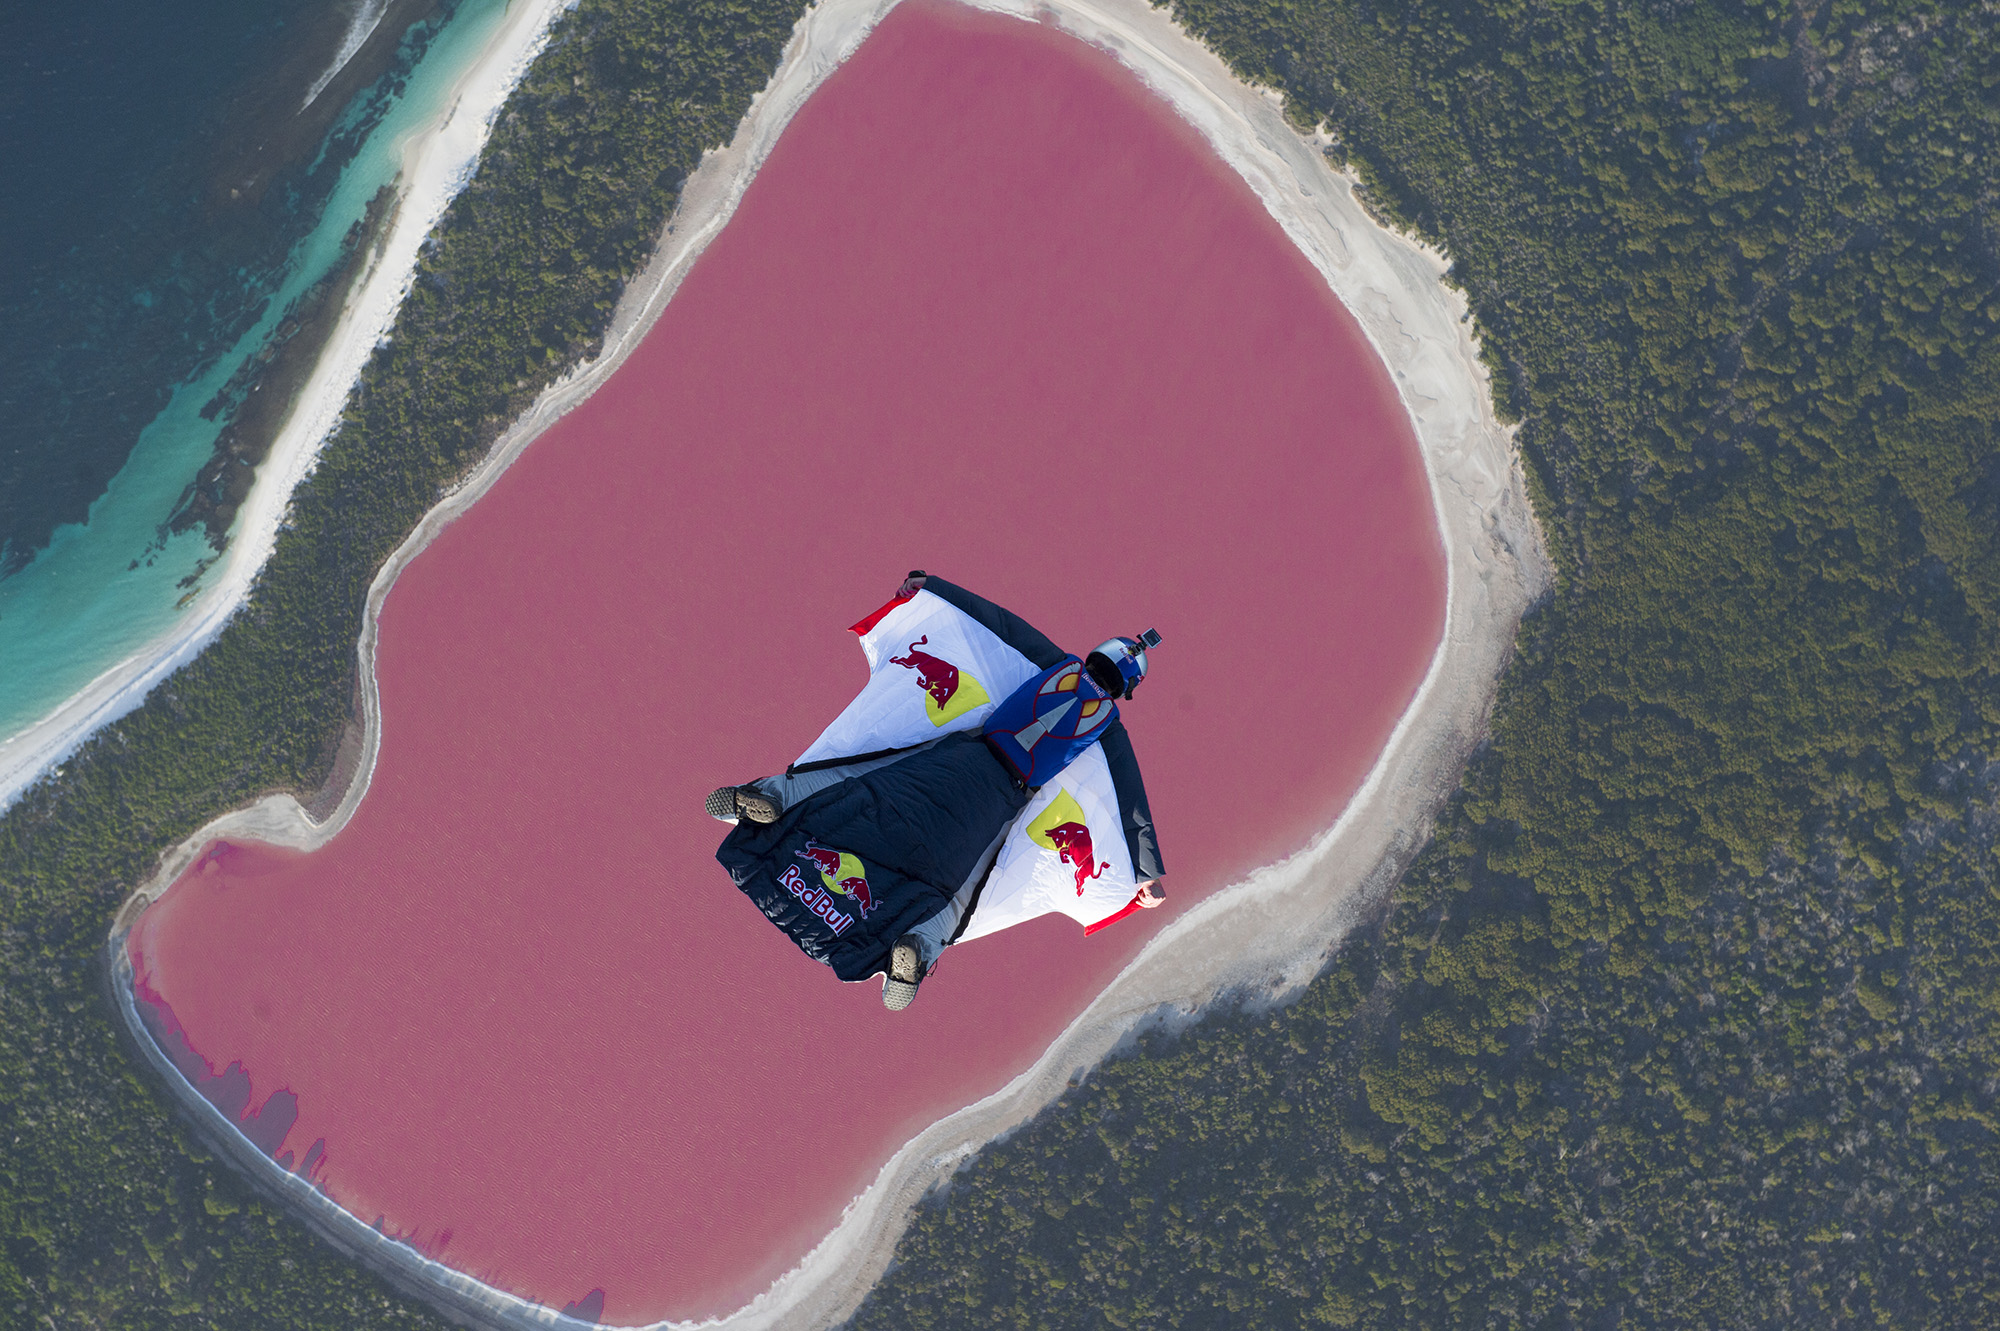 Chuck Berry spreadeagled in a wingsuit floating down to a very pink lake